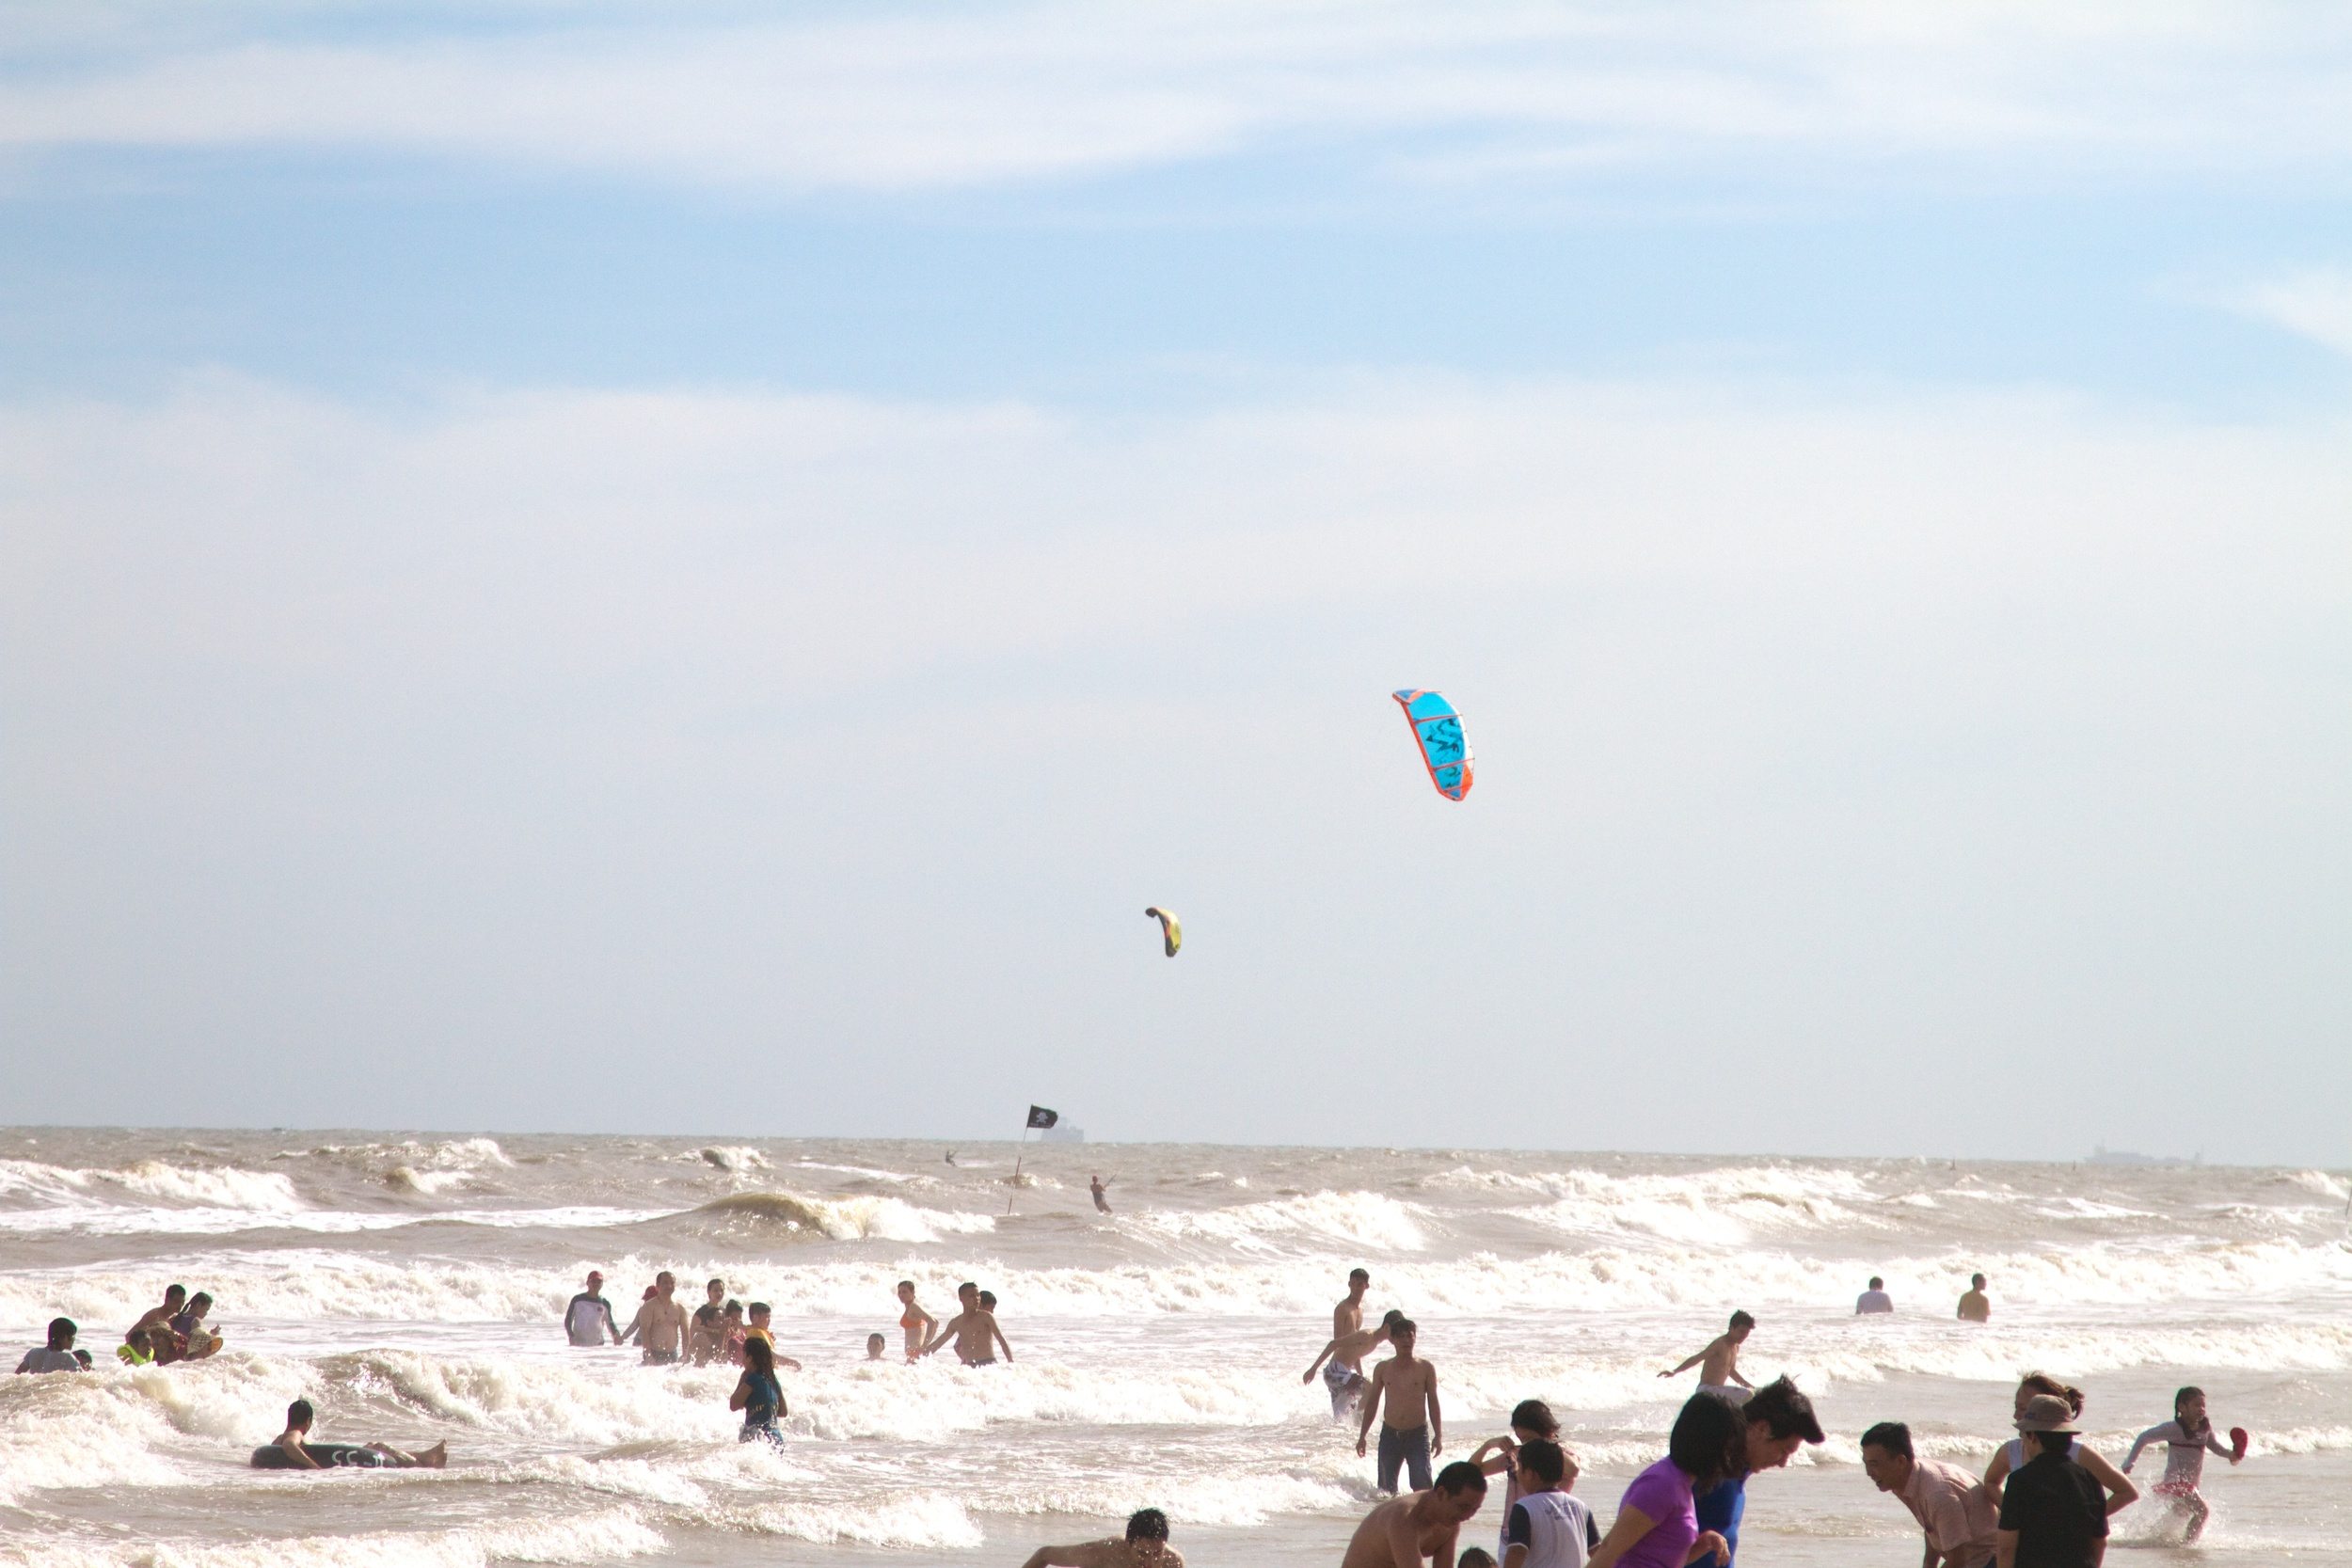 Vung Tau has onshore wind with waves and lots of people swimming  so really not a good spot to kite....jpg